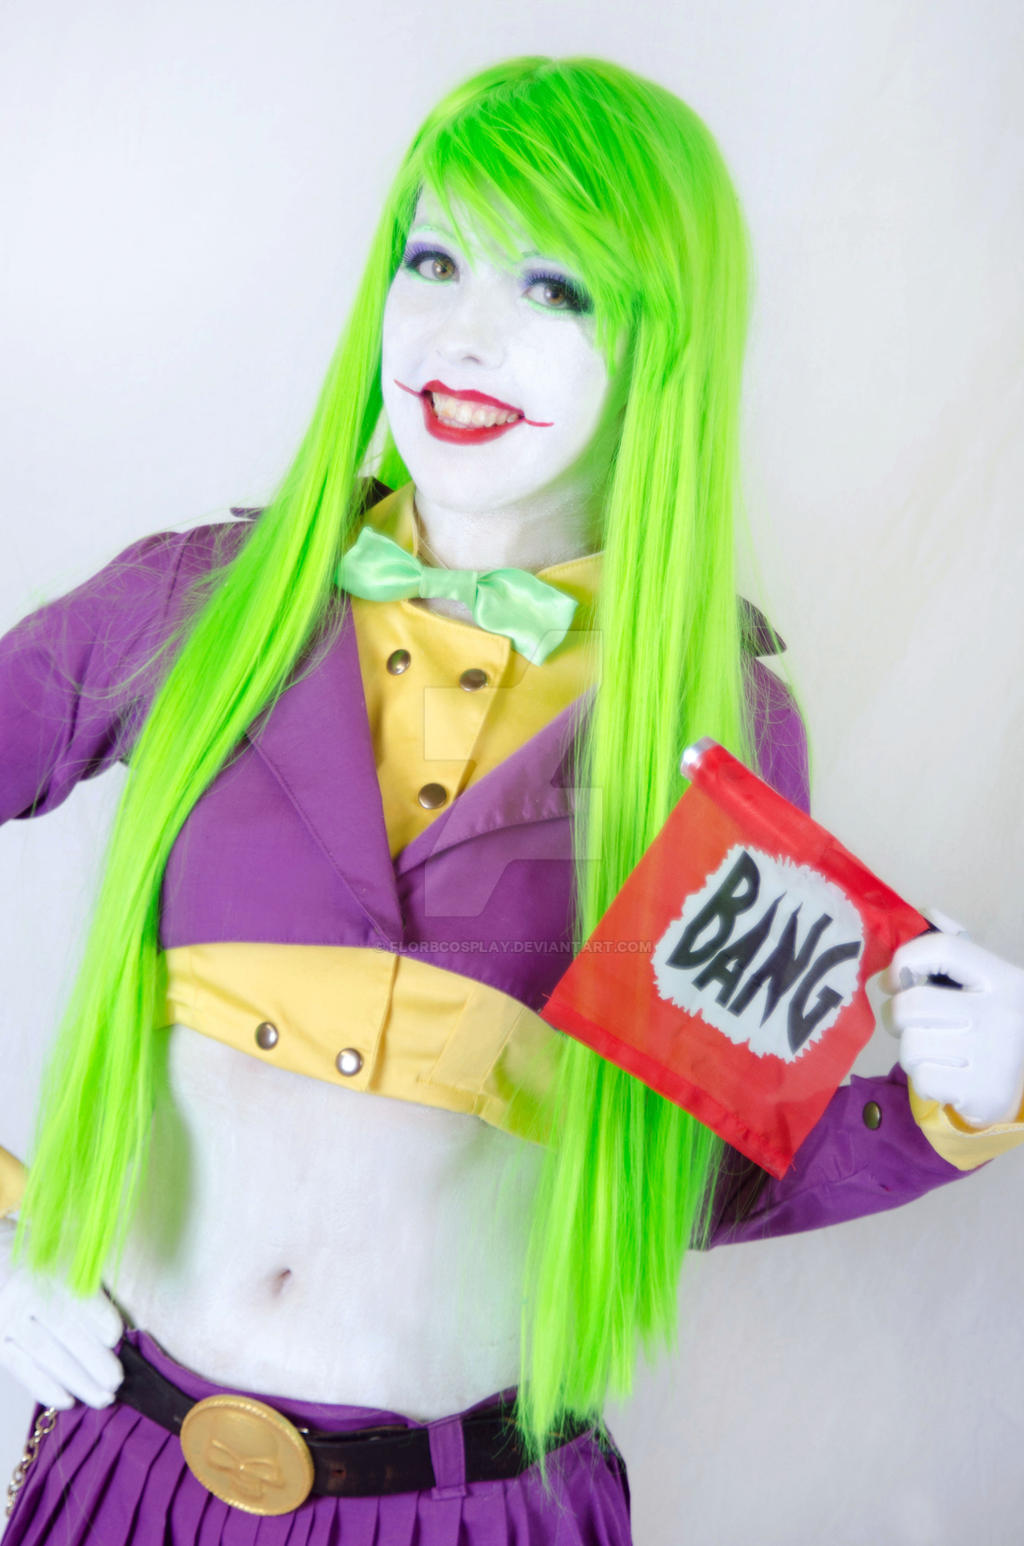 Lady Joker VII - Cosplay Batman by FlorBcosplay